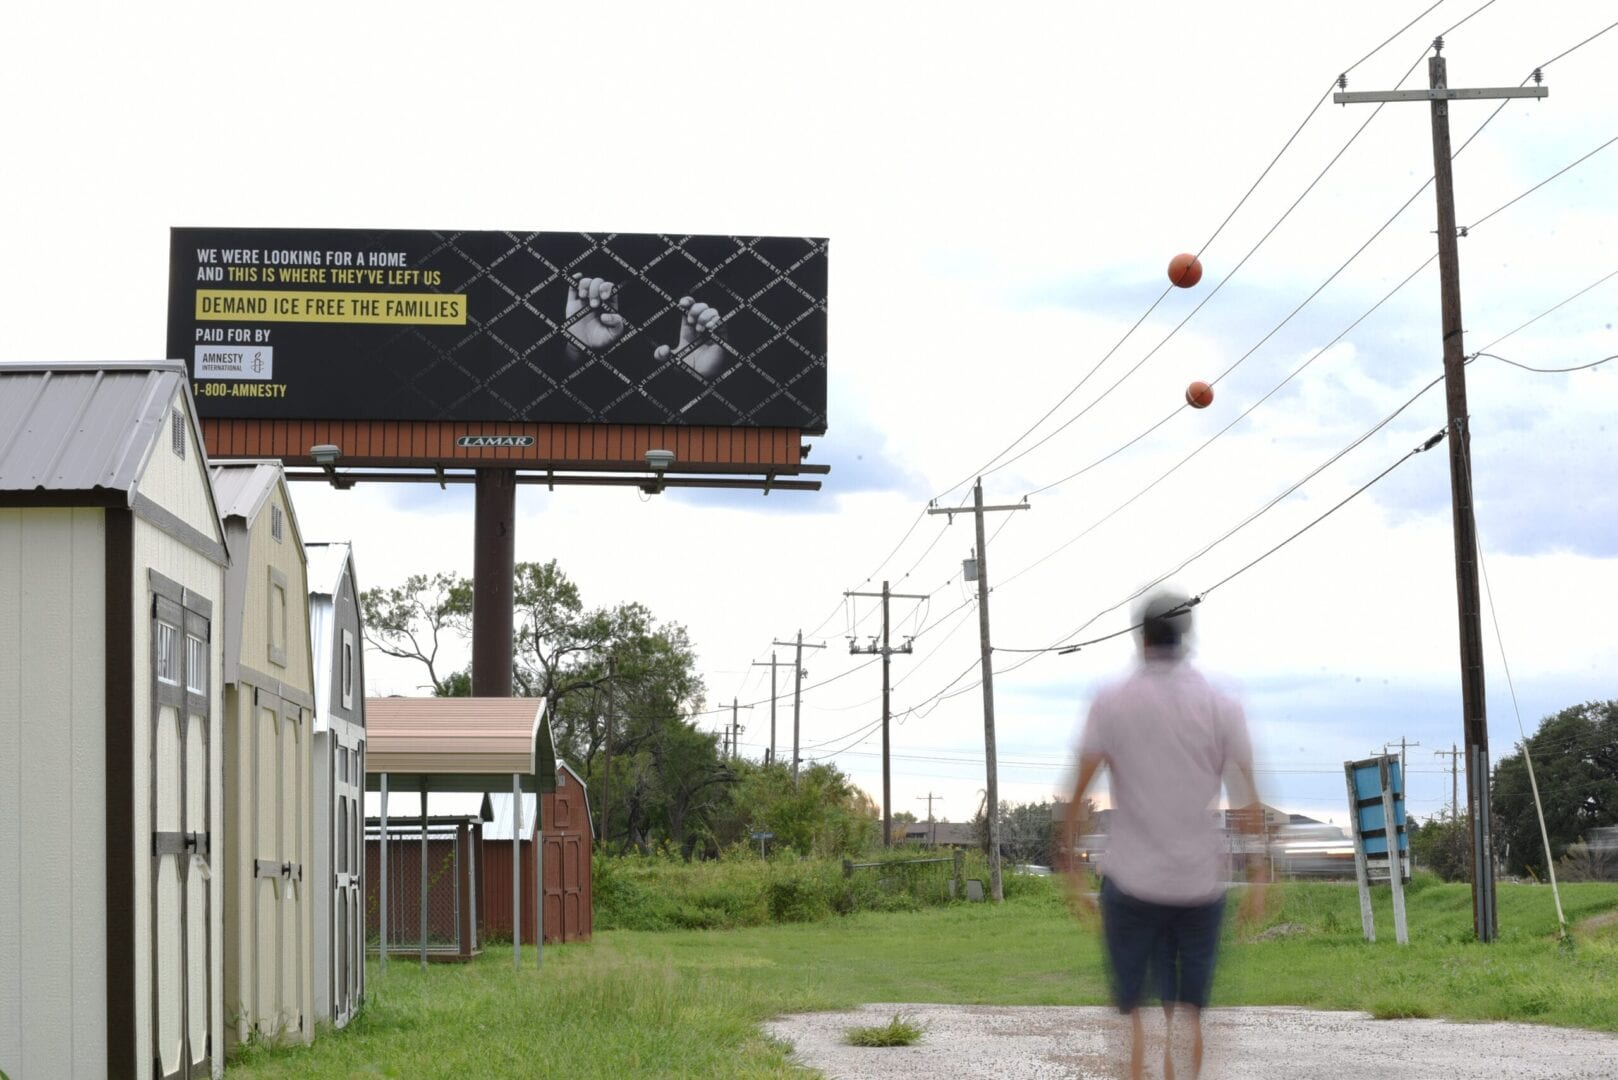 New Billboards Call on ICE to Stop Detaining Families and Children